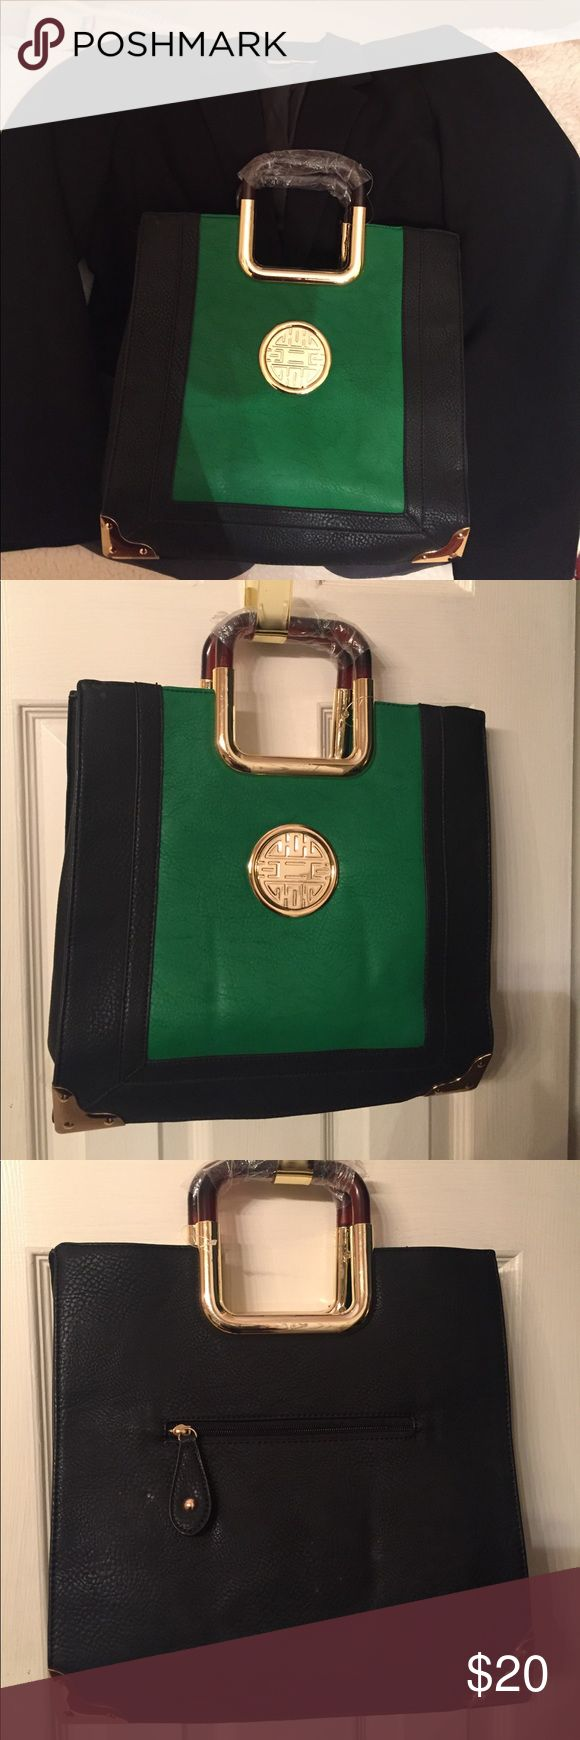 Elegant Bag This bag will look good with any dress up or down outfit. Never used this and very spacious. A lot of compartments to hold everything in place. 13 inches wide and 13 length. The bottom extends 5 inches. no brand Bags Satchels